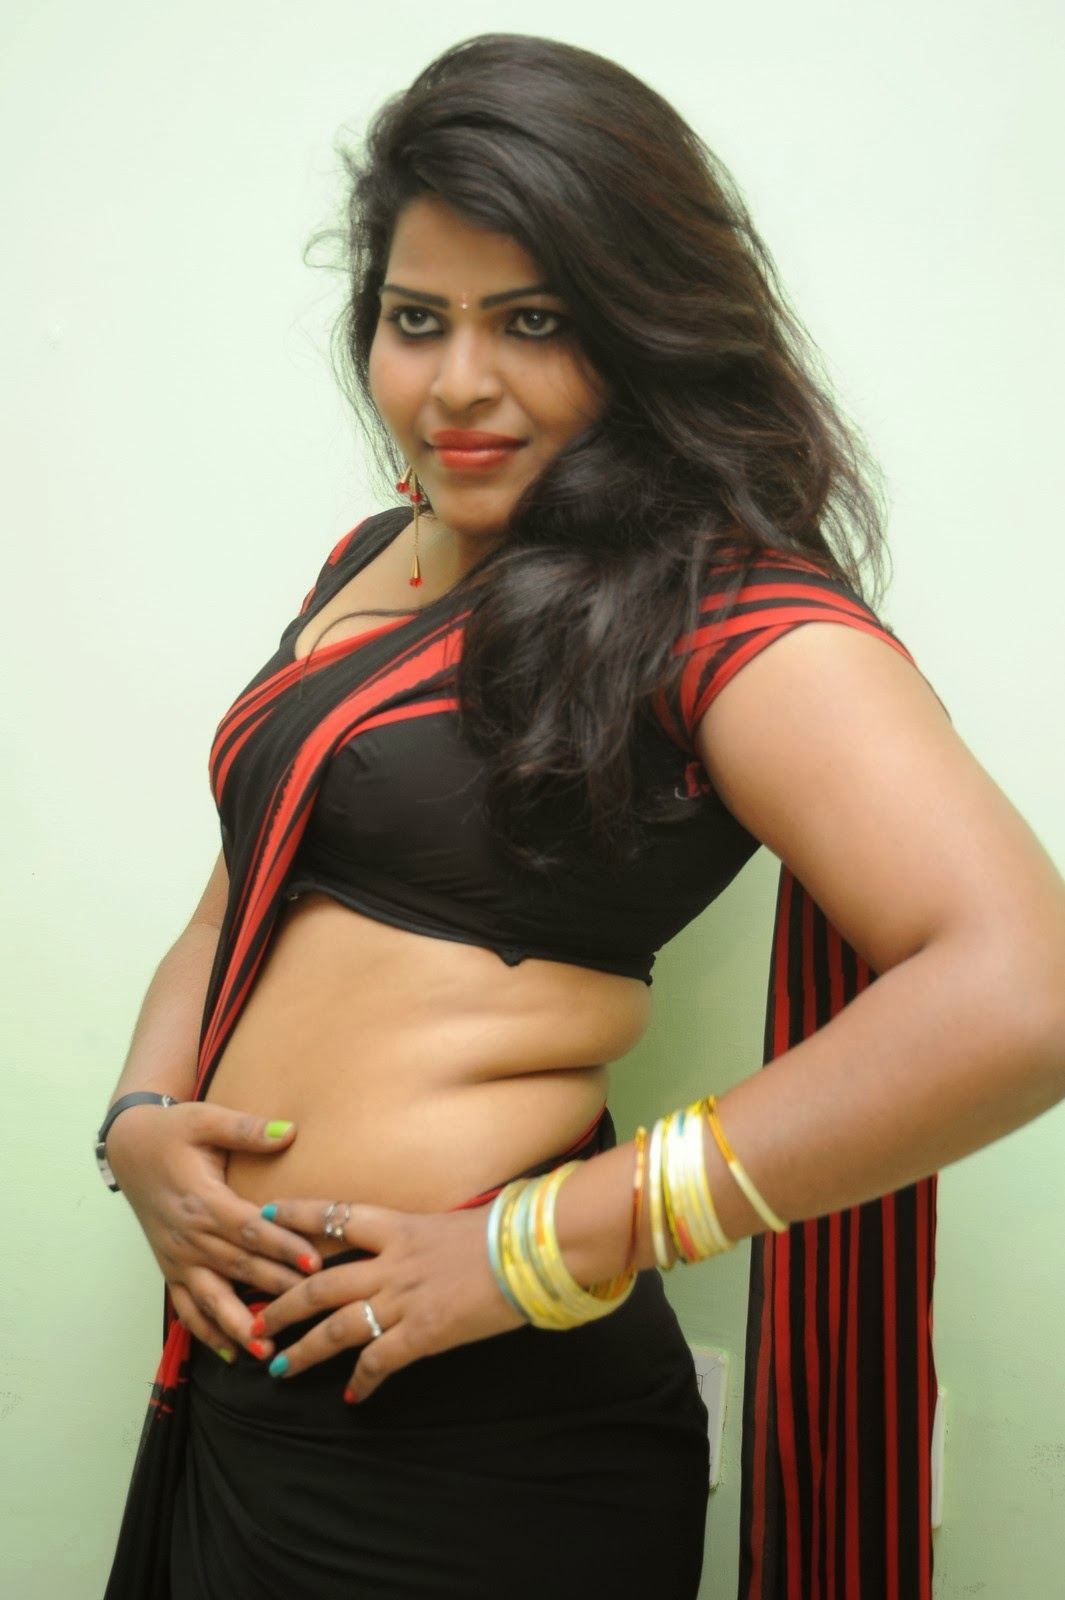 Indian girl slim hd naked